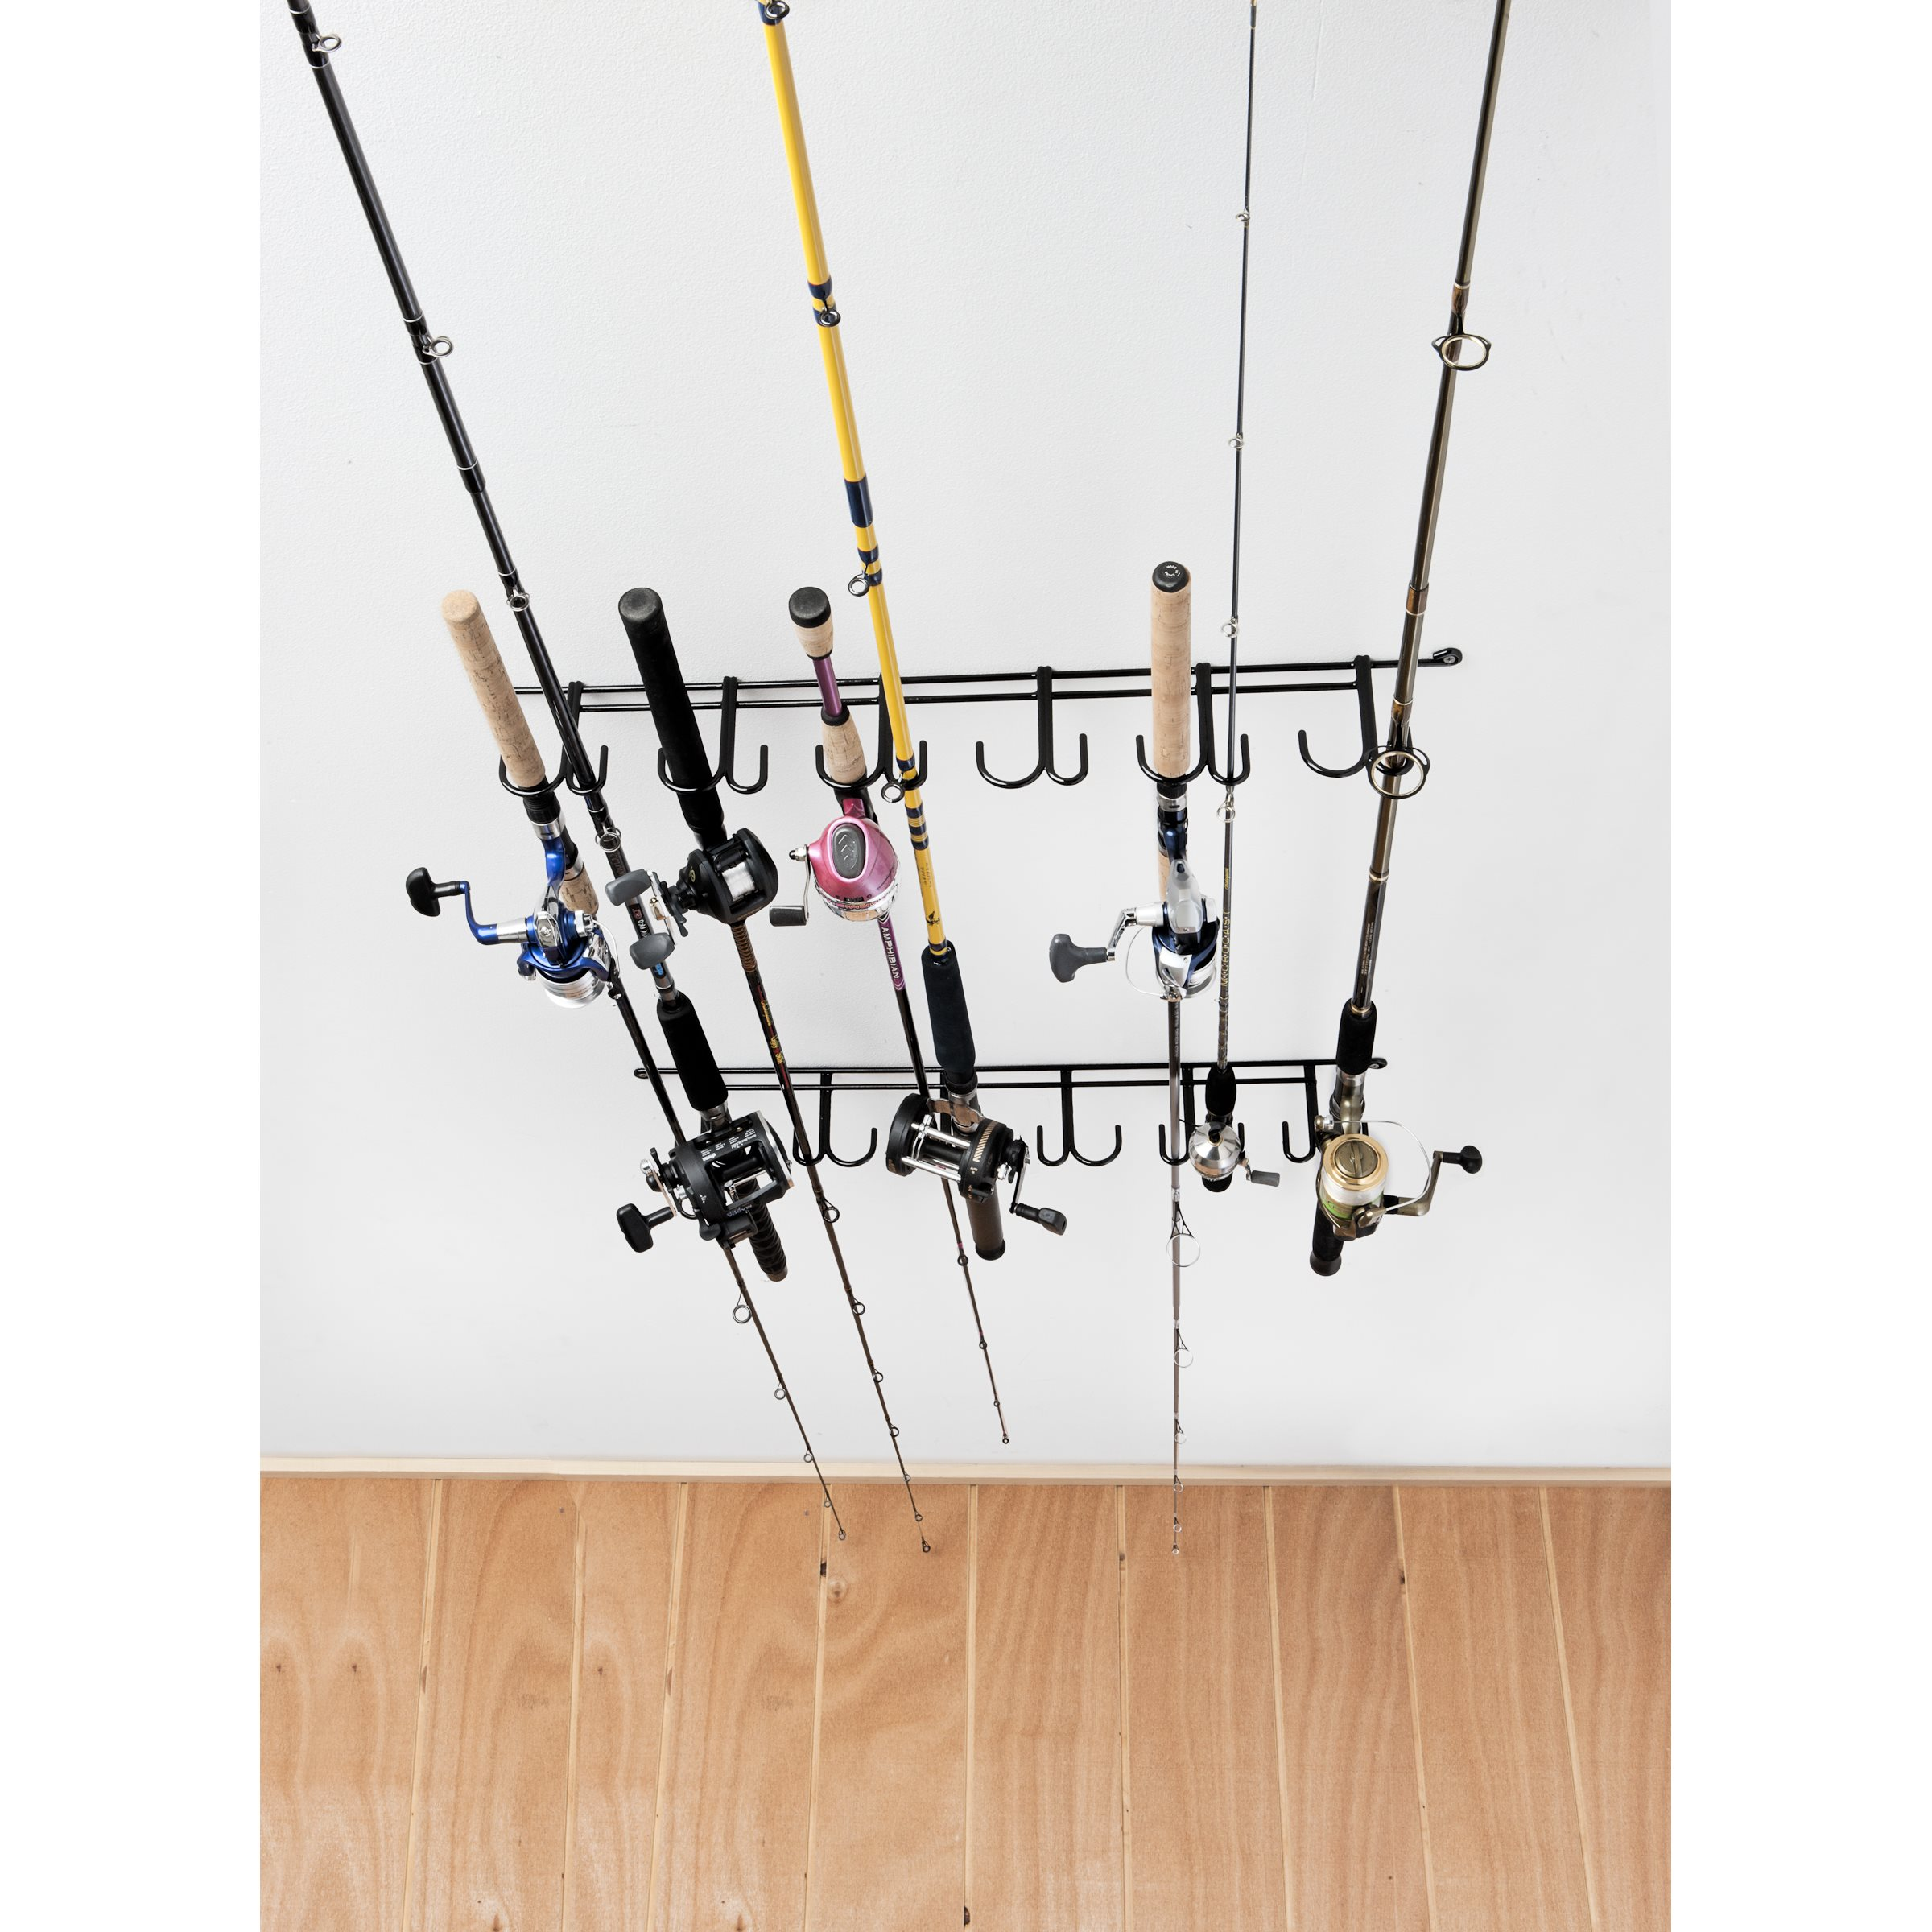 Overhead 12 rod rack sku 7009 rack 39 em racks for Walmart fishing pole holder